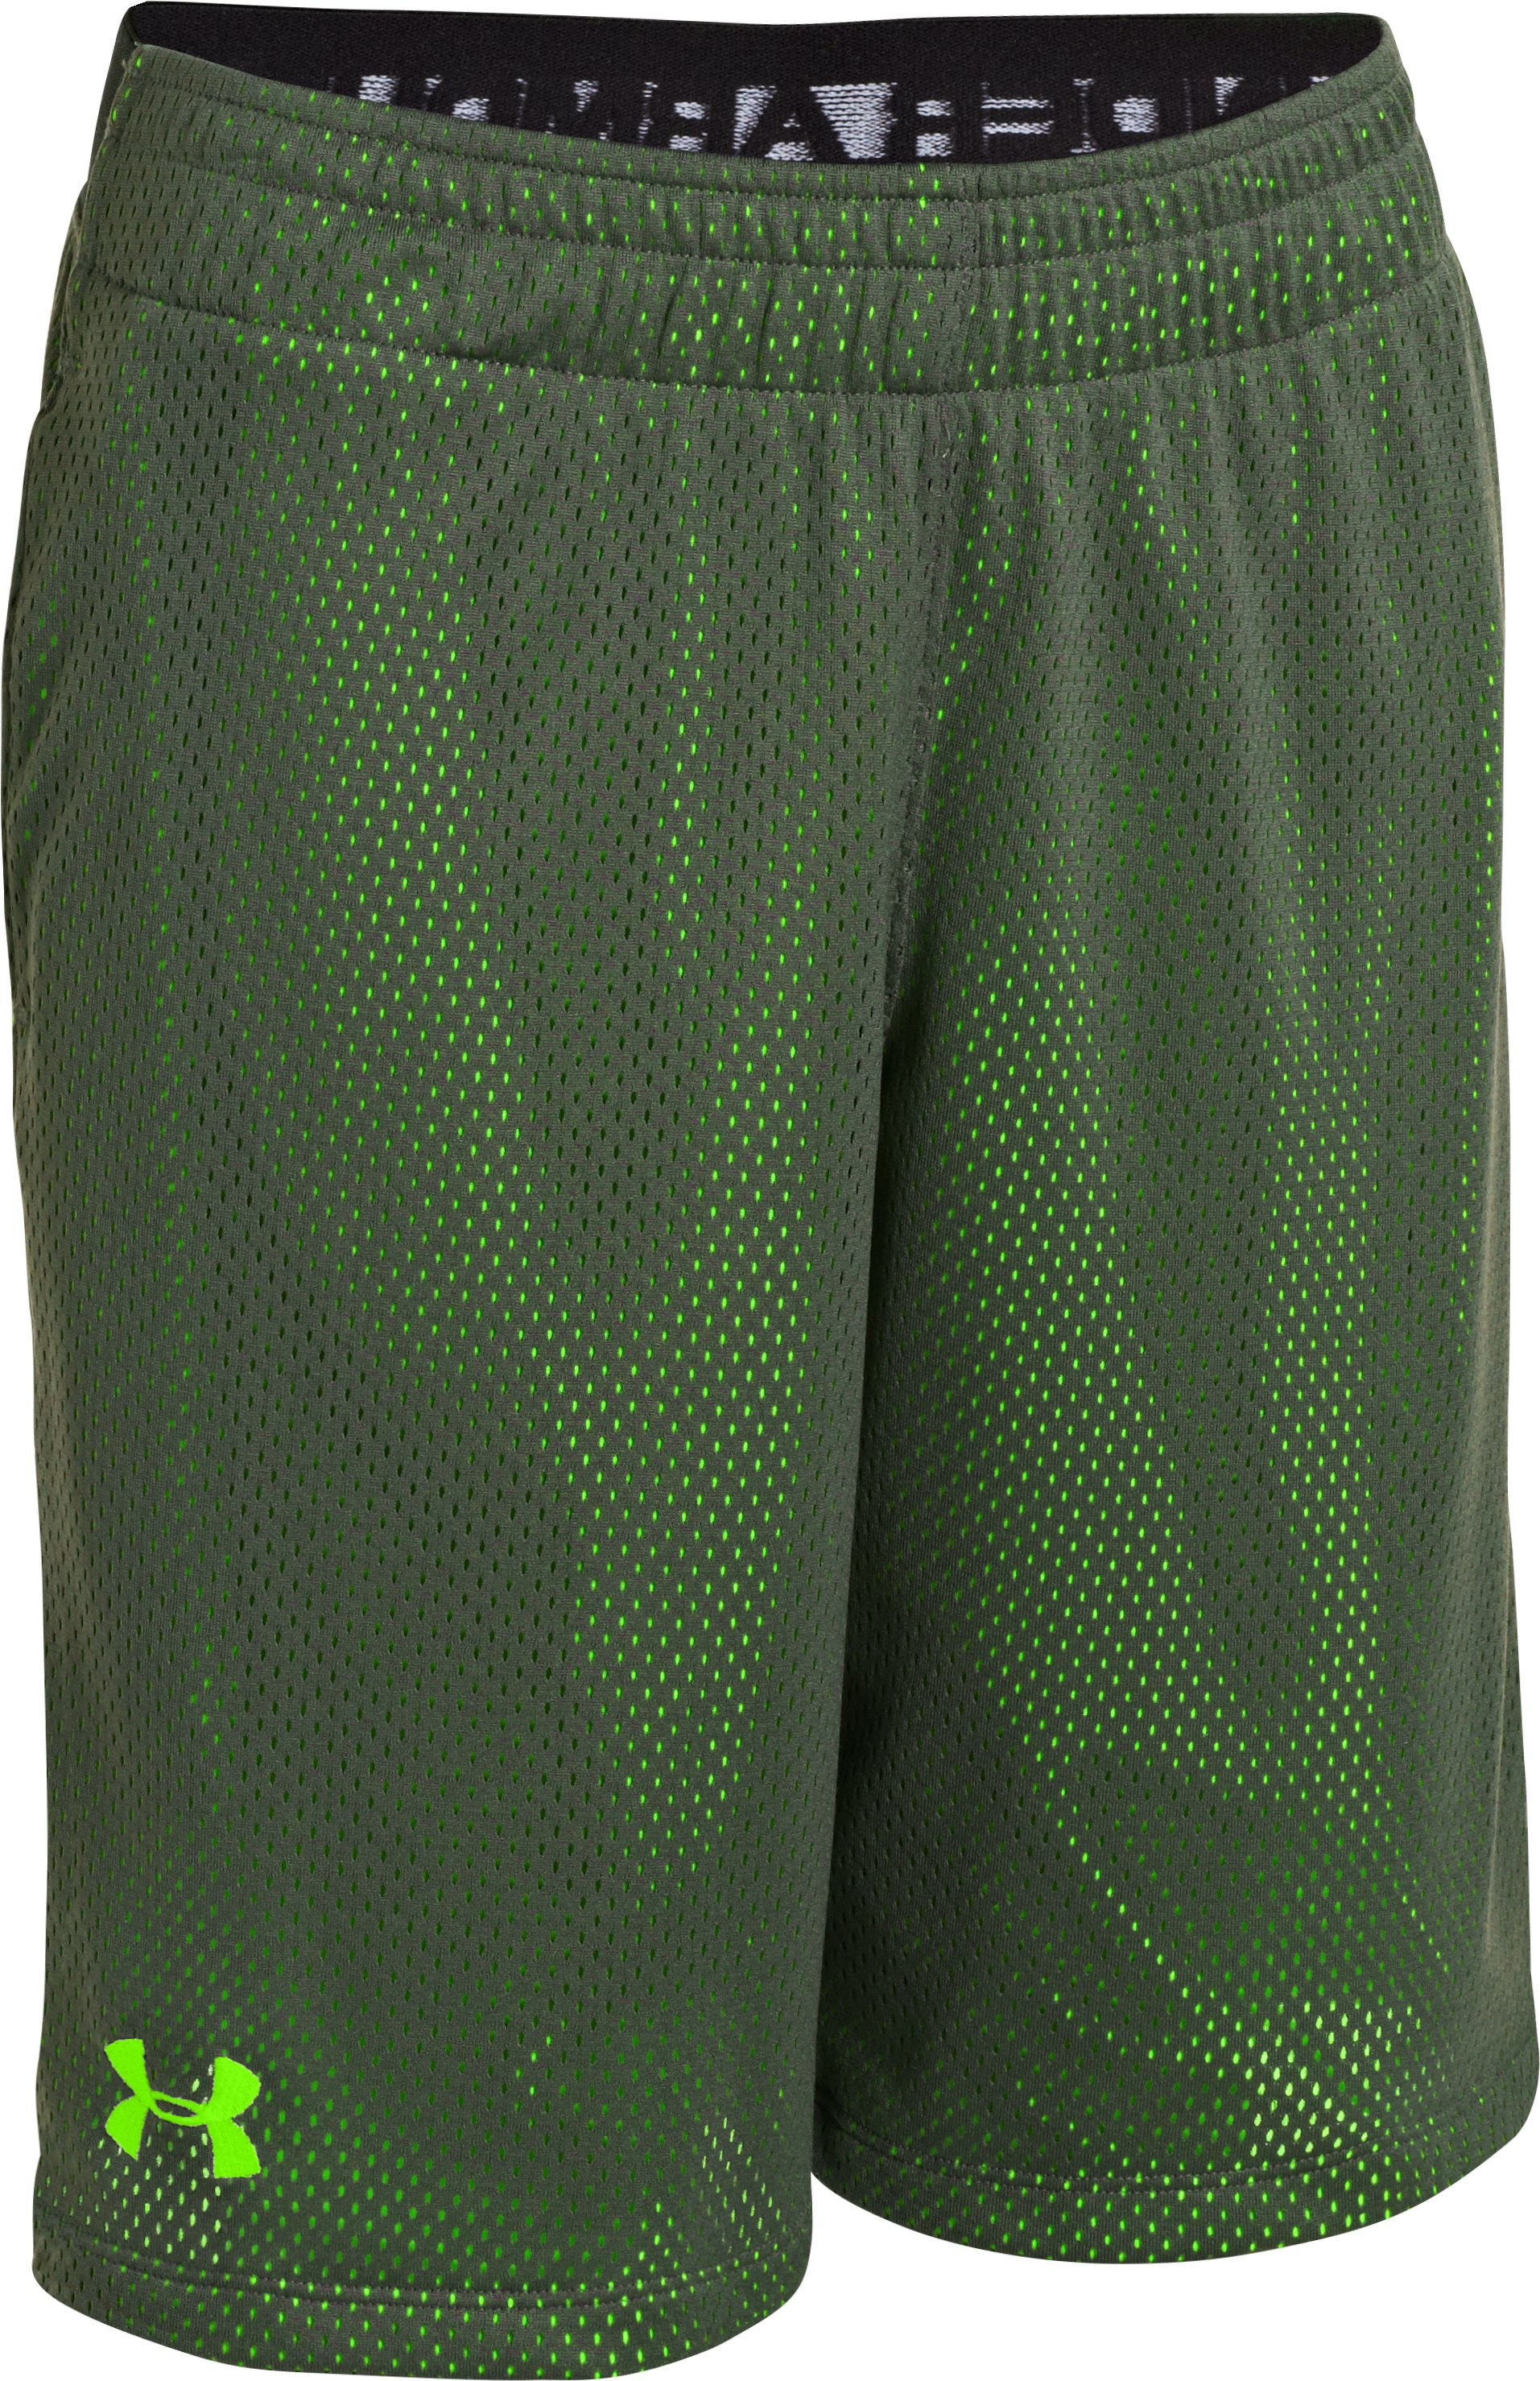 "Boys' UA Renegade 9"" Shorts, Steel, zoomed image"